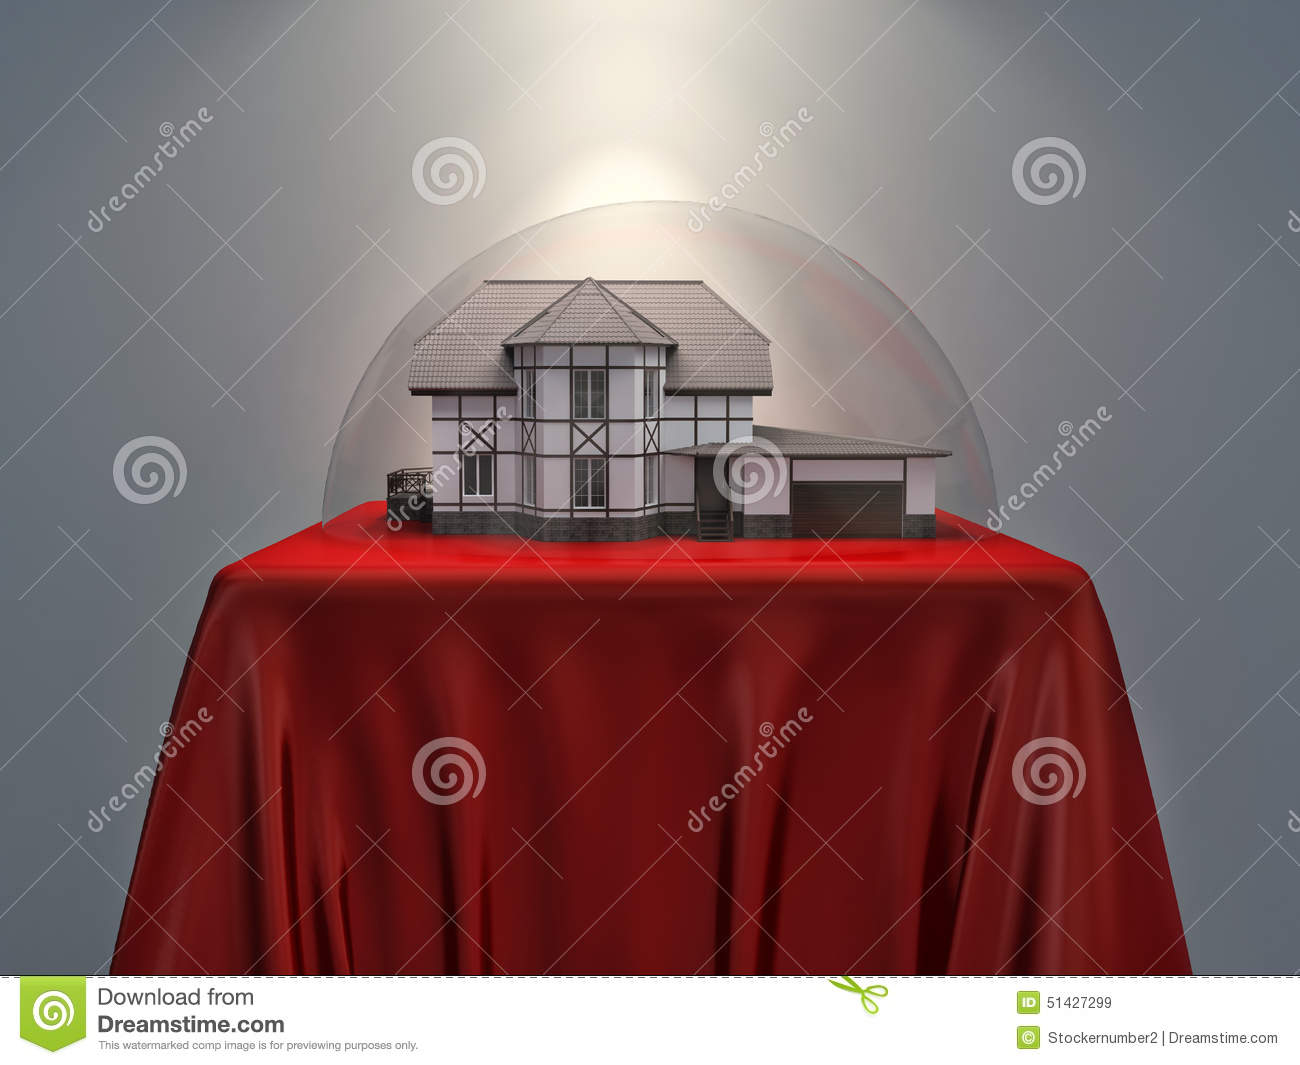 House Under The Dome Stock Illustration - Image: 51427299